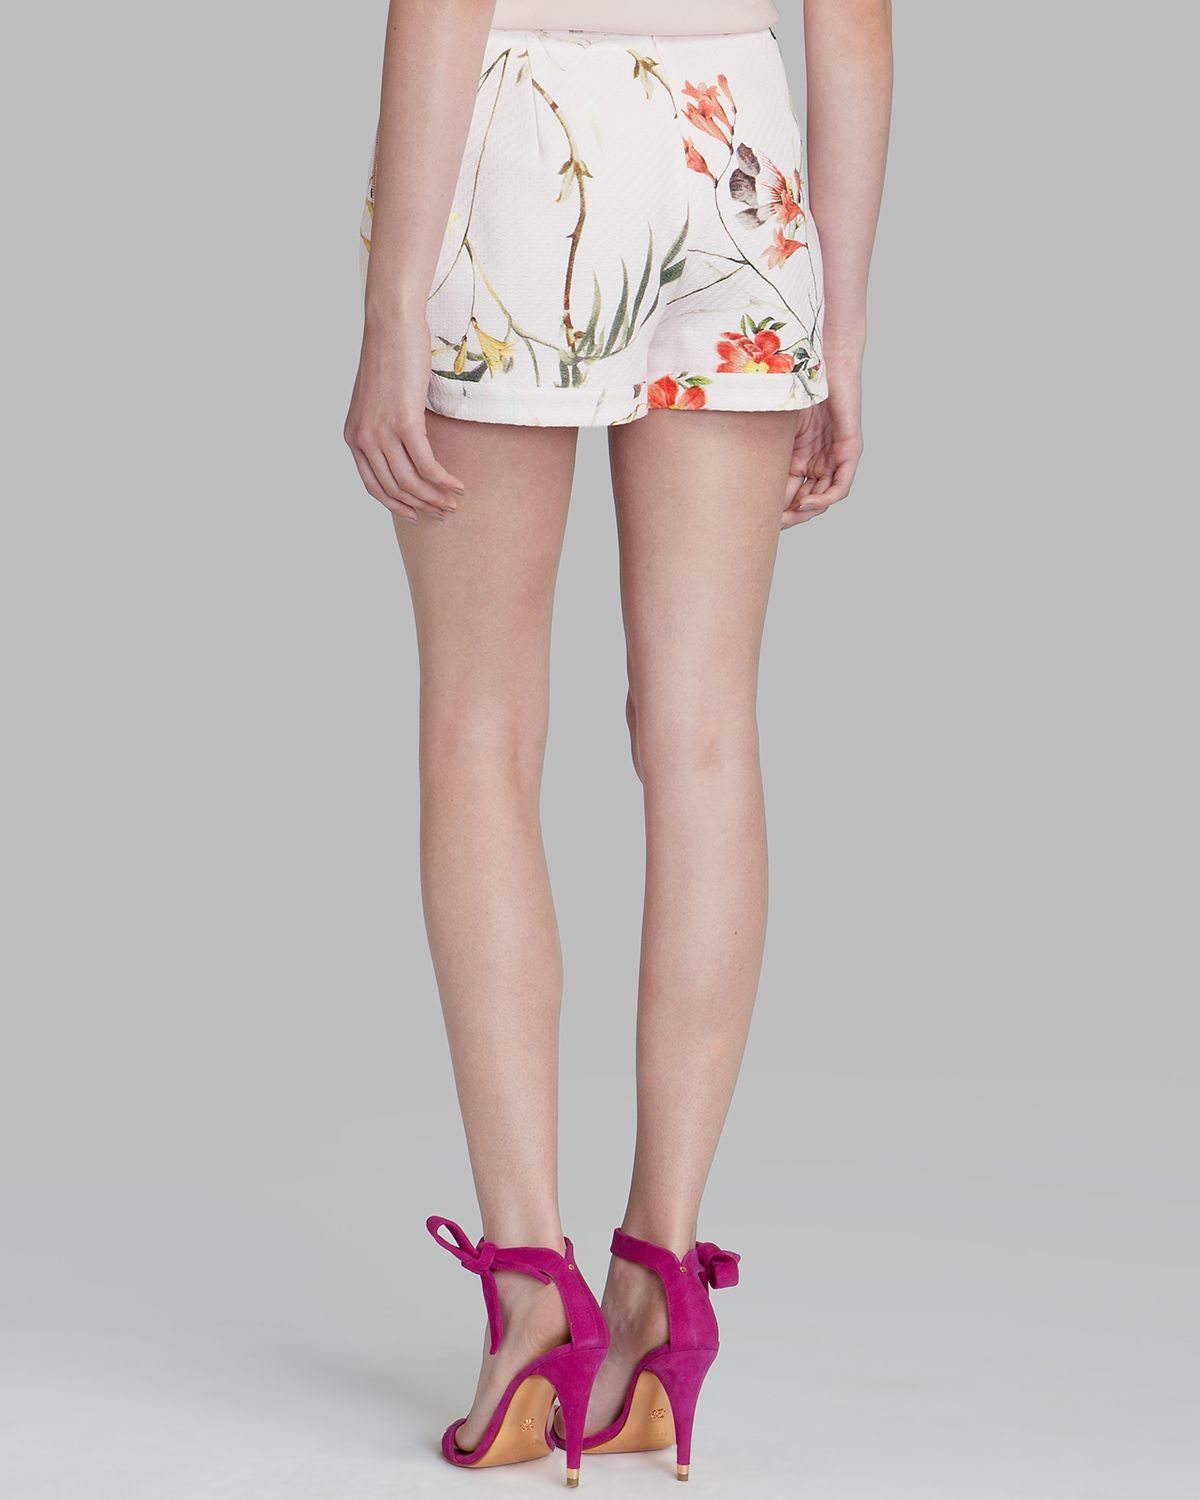 4958c8f06 Lyst - Ted Baker Shorts - Sabele Botanical Bloom Print in Pink